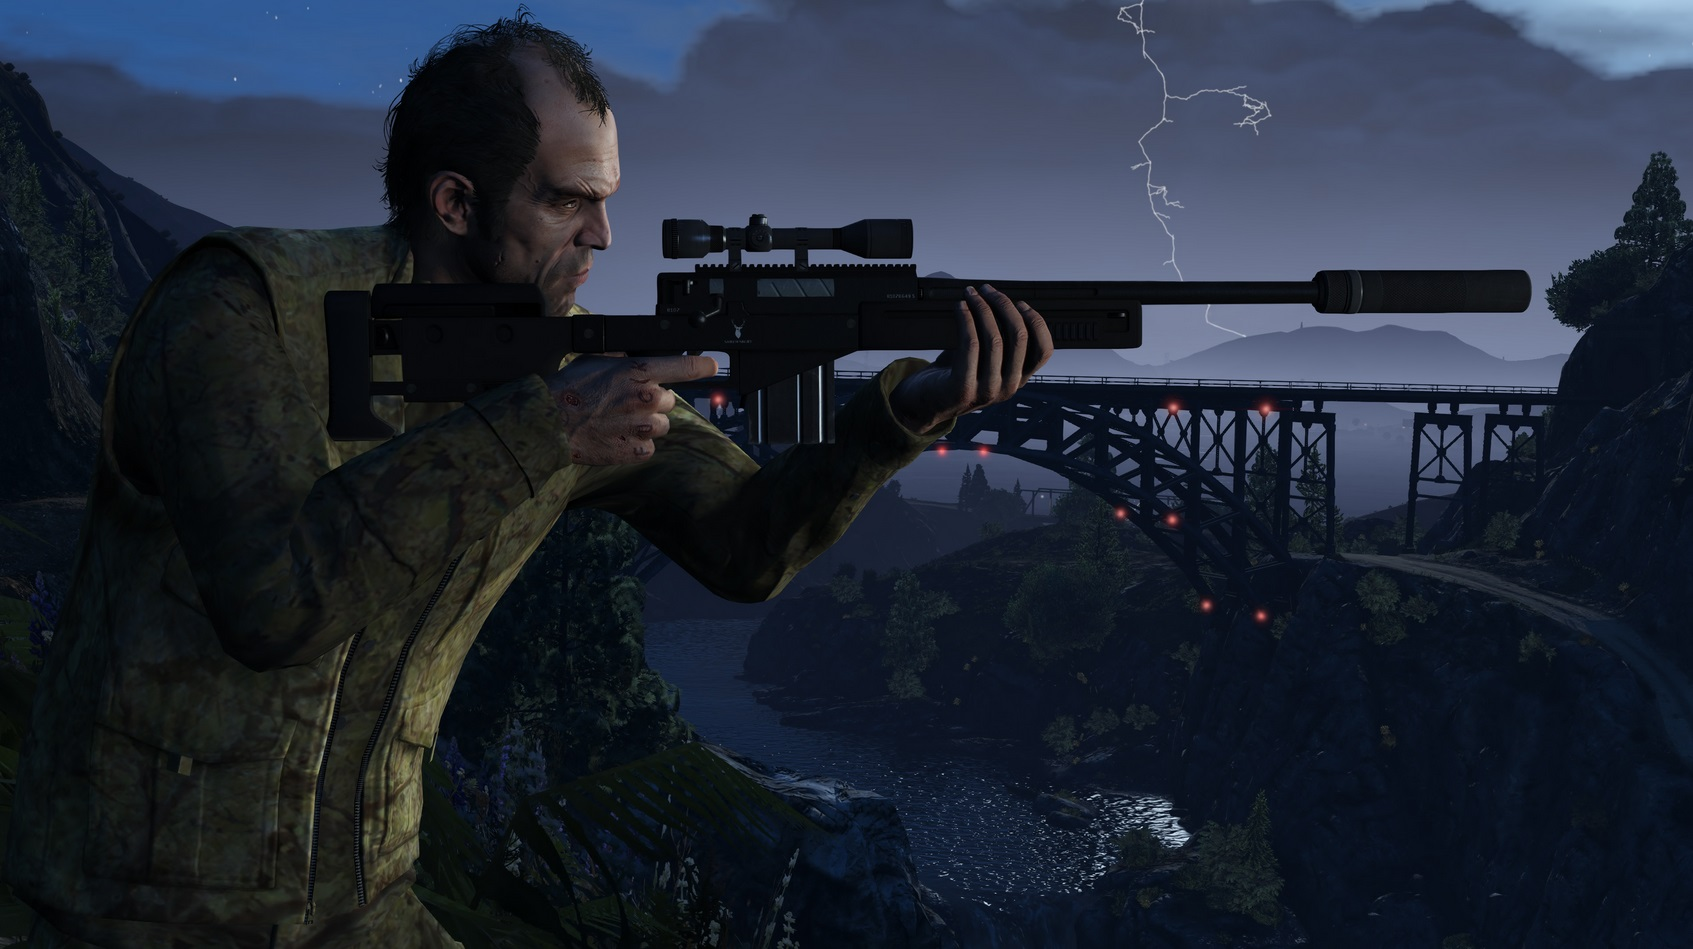 GTA 5 cheats: all Grand Theft Auto 5 cheats and phone numbers for